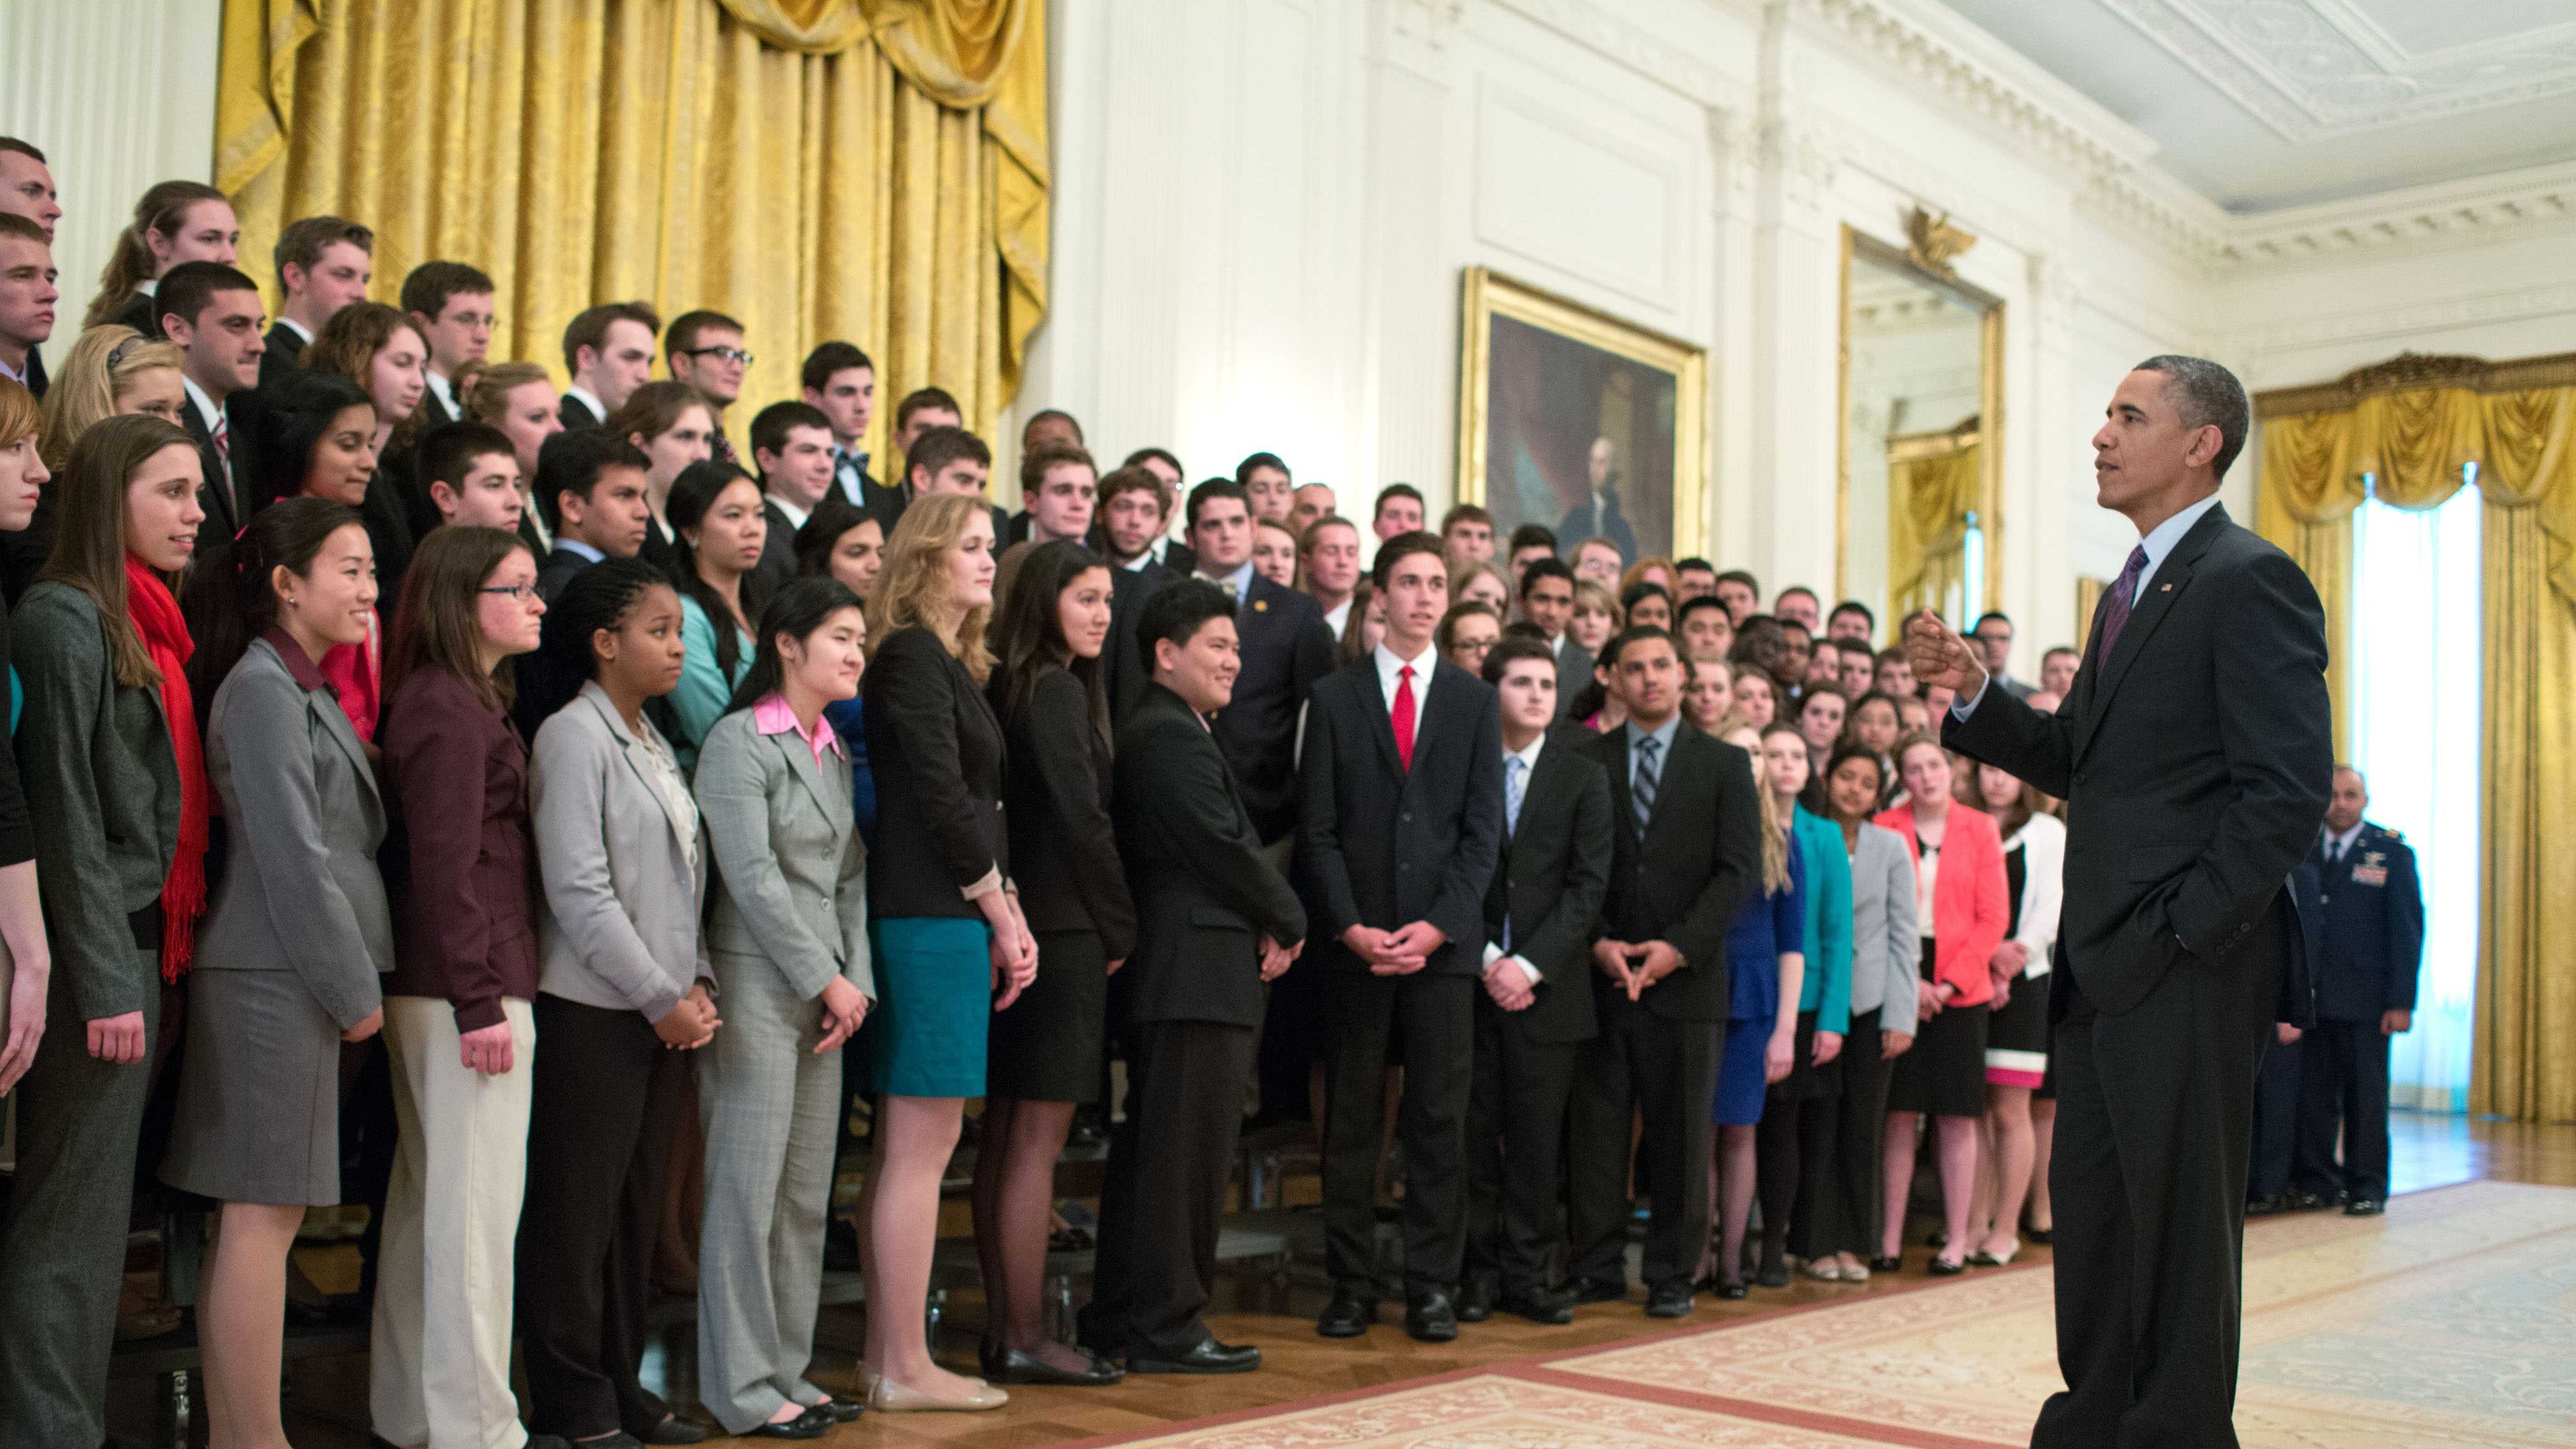 President Barack Obama speaks with members of the United States Senate Youth Leadership Program in the East Room of the White House. (March 14, 2013)